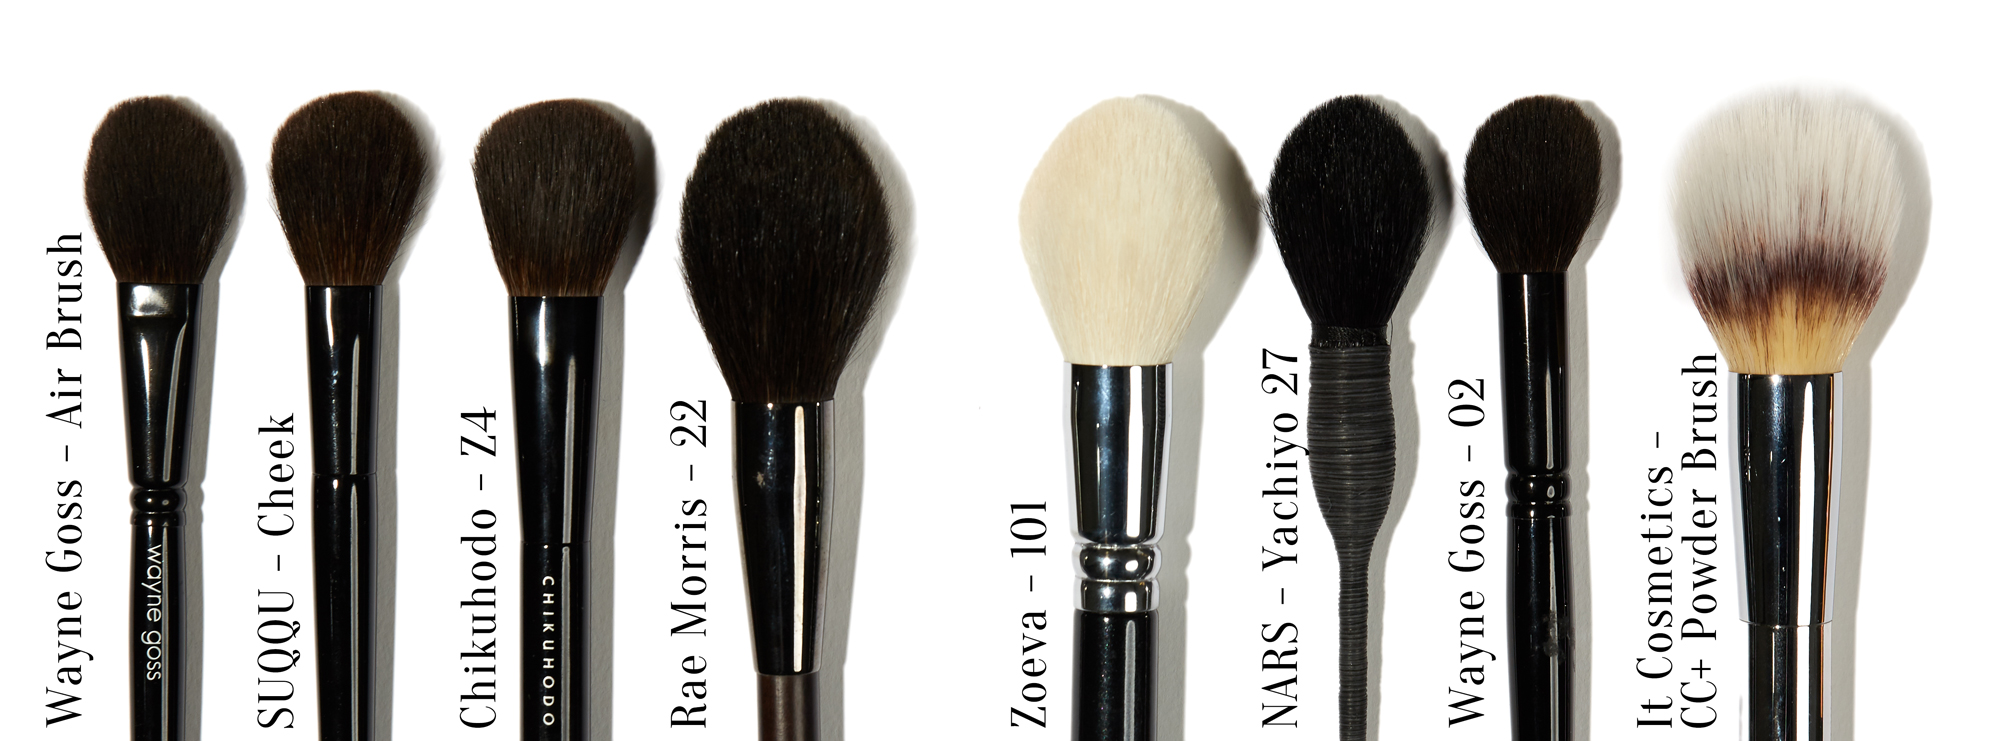 Japanese Brush Starter Kit Face Brushes Blog